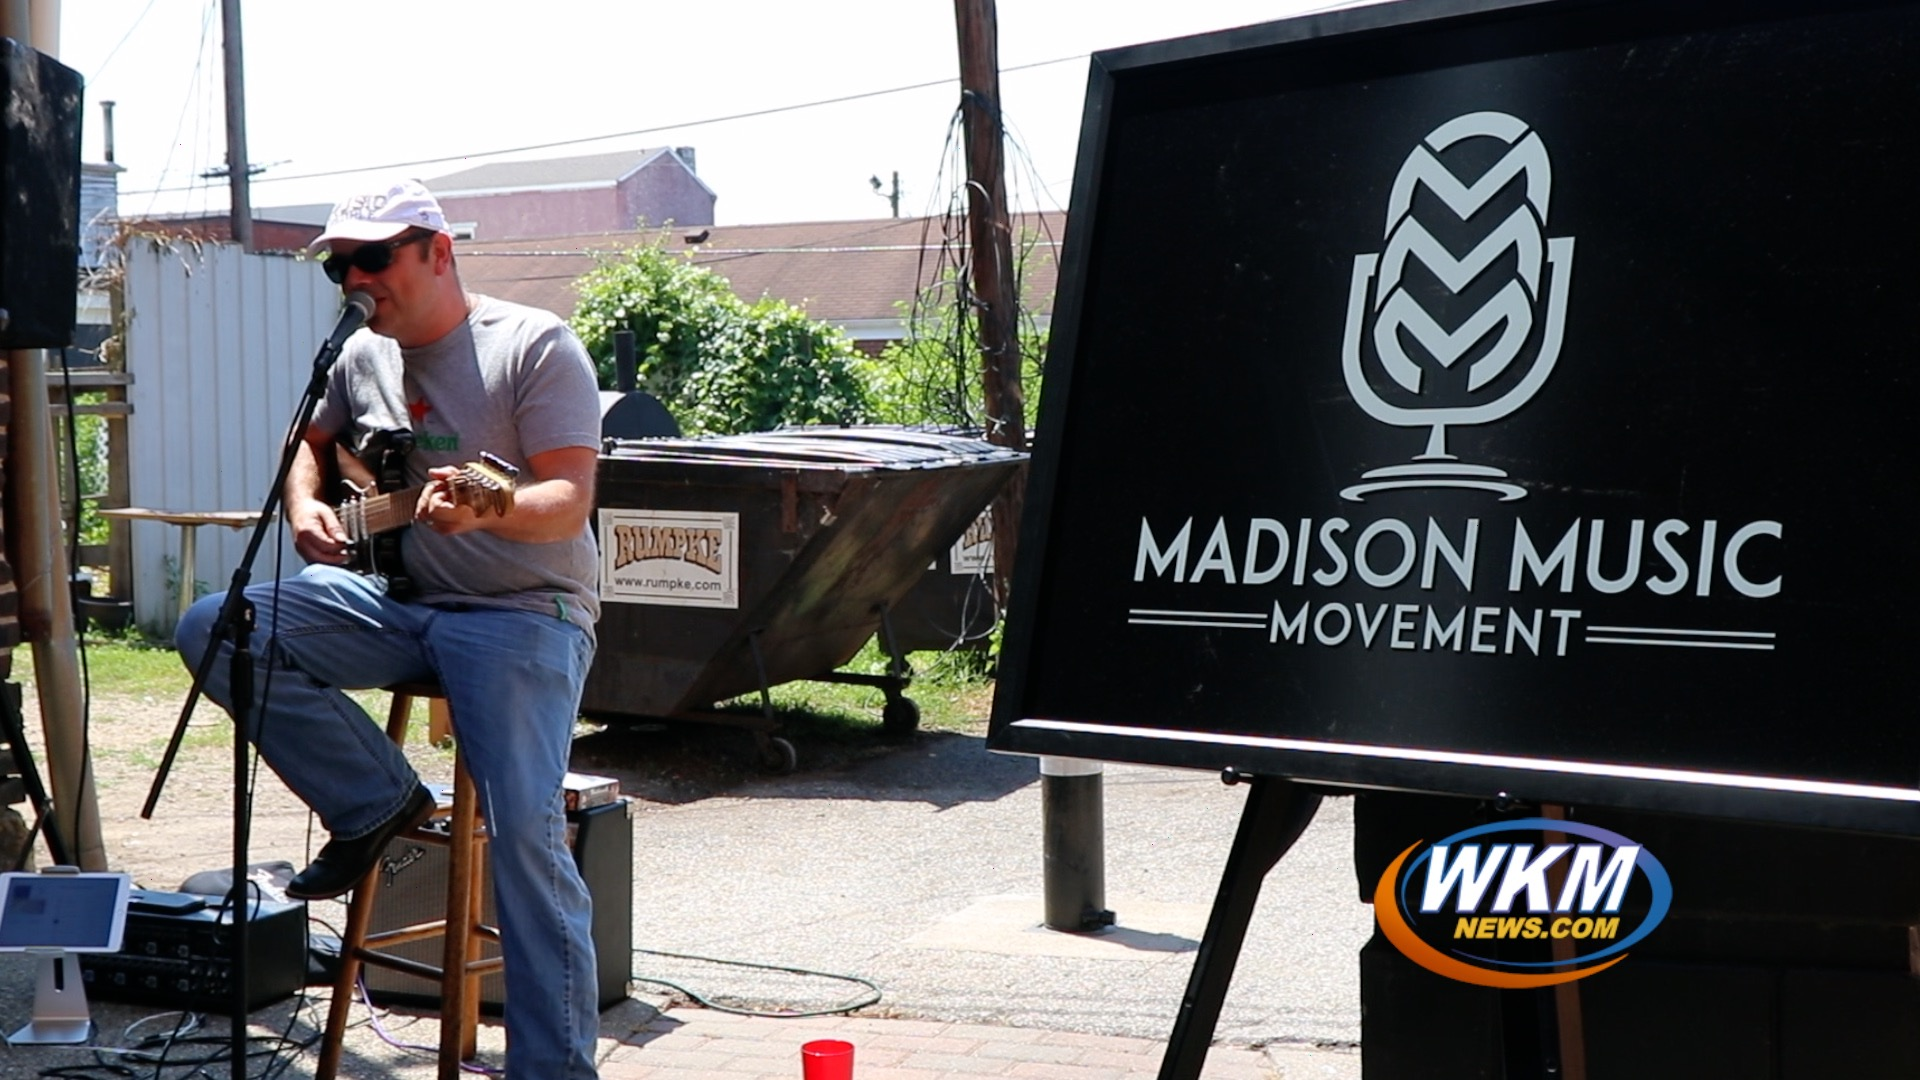 New Movement Looks to Make Madison Indiana's Music City